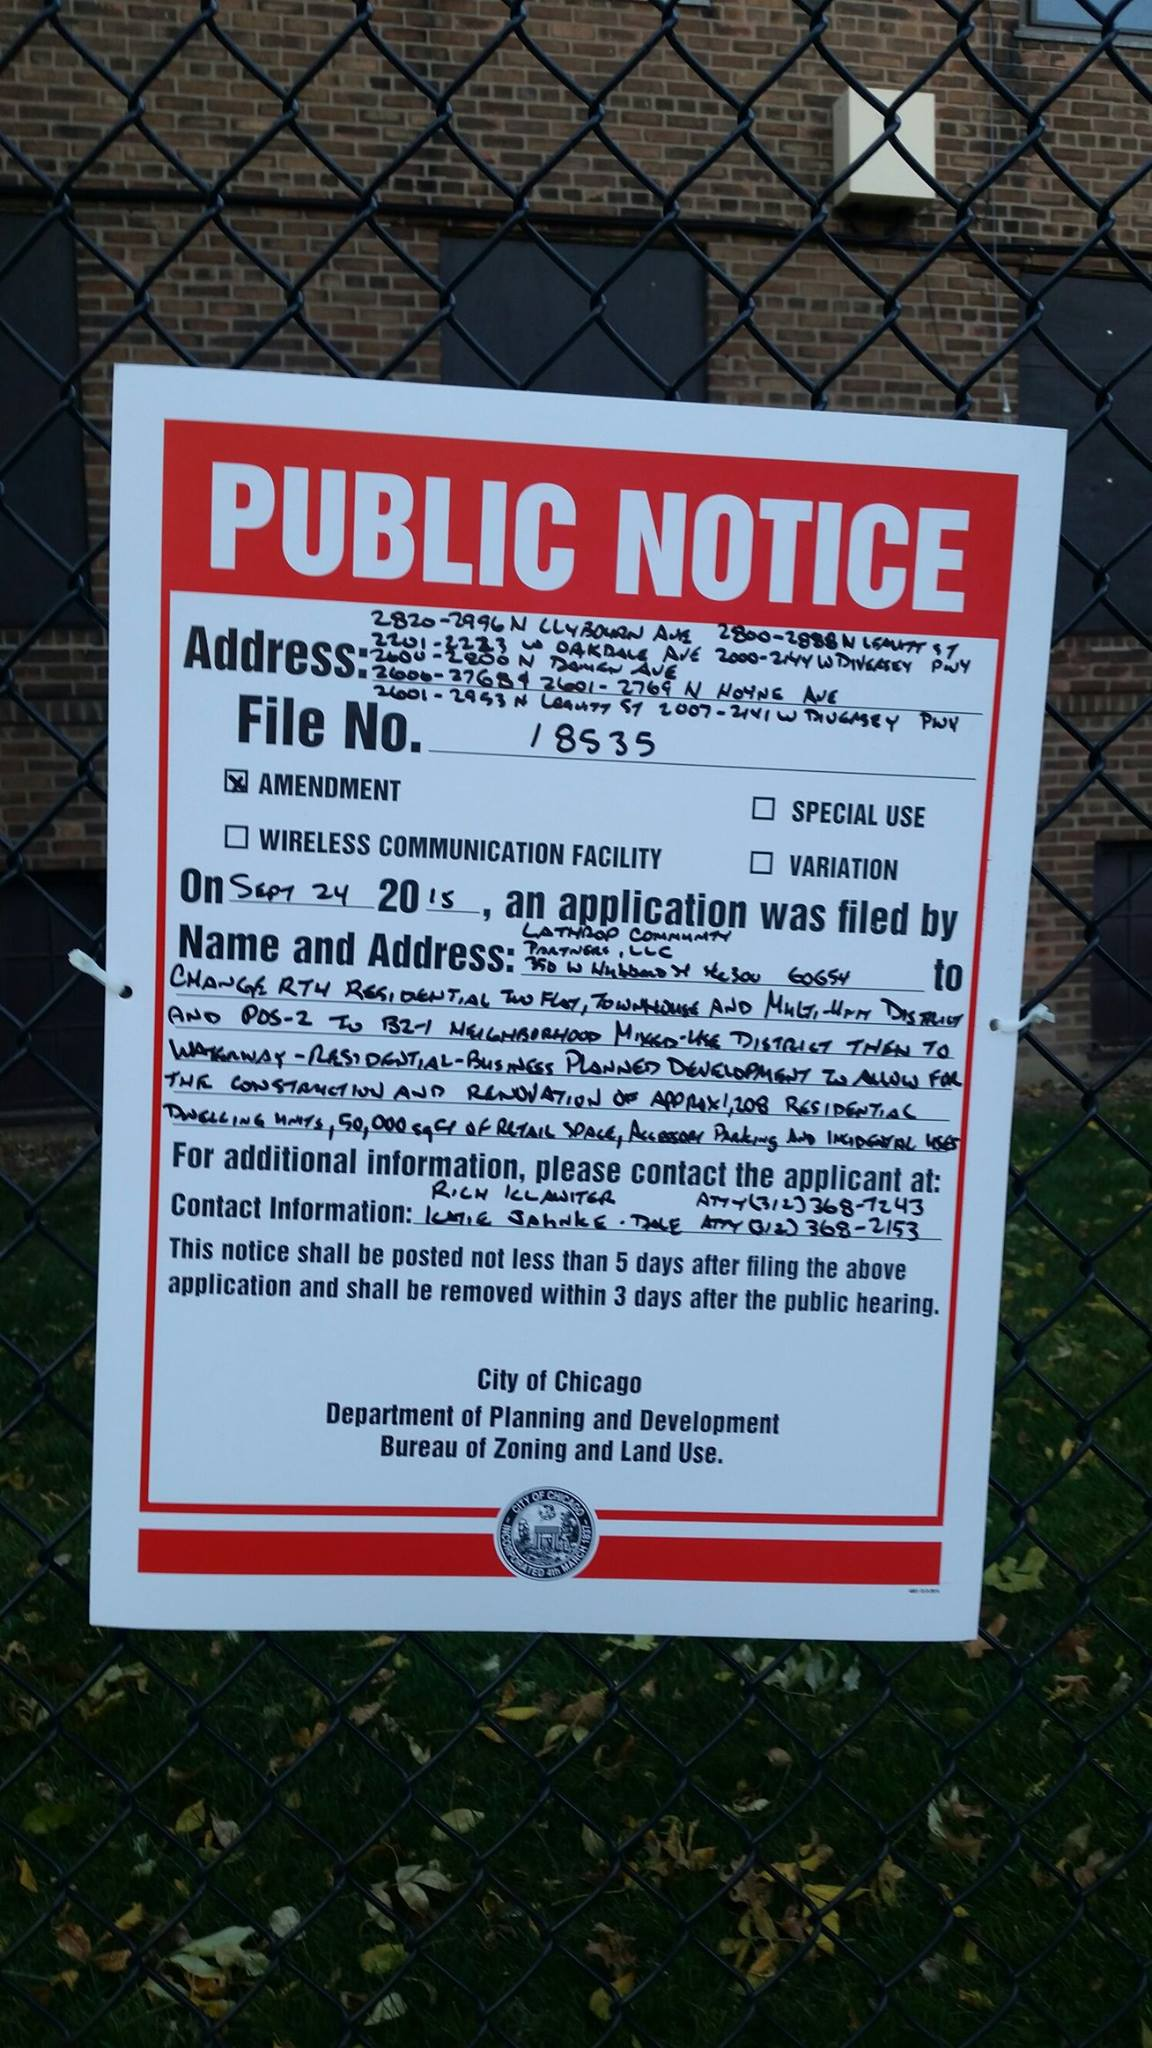 A close up of public notice of an intent to file a zoning change for Lathrop Homes in Chicago, attached to a wire fence